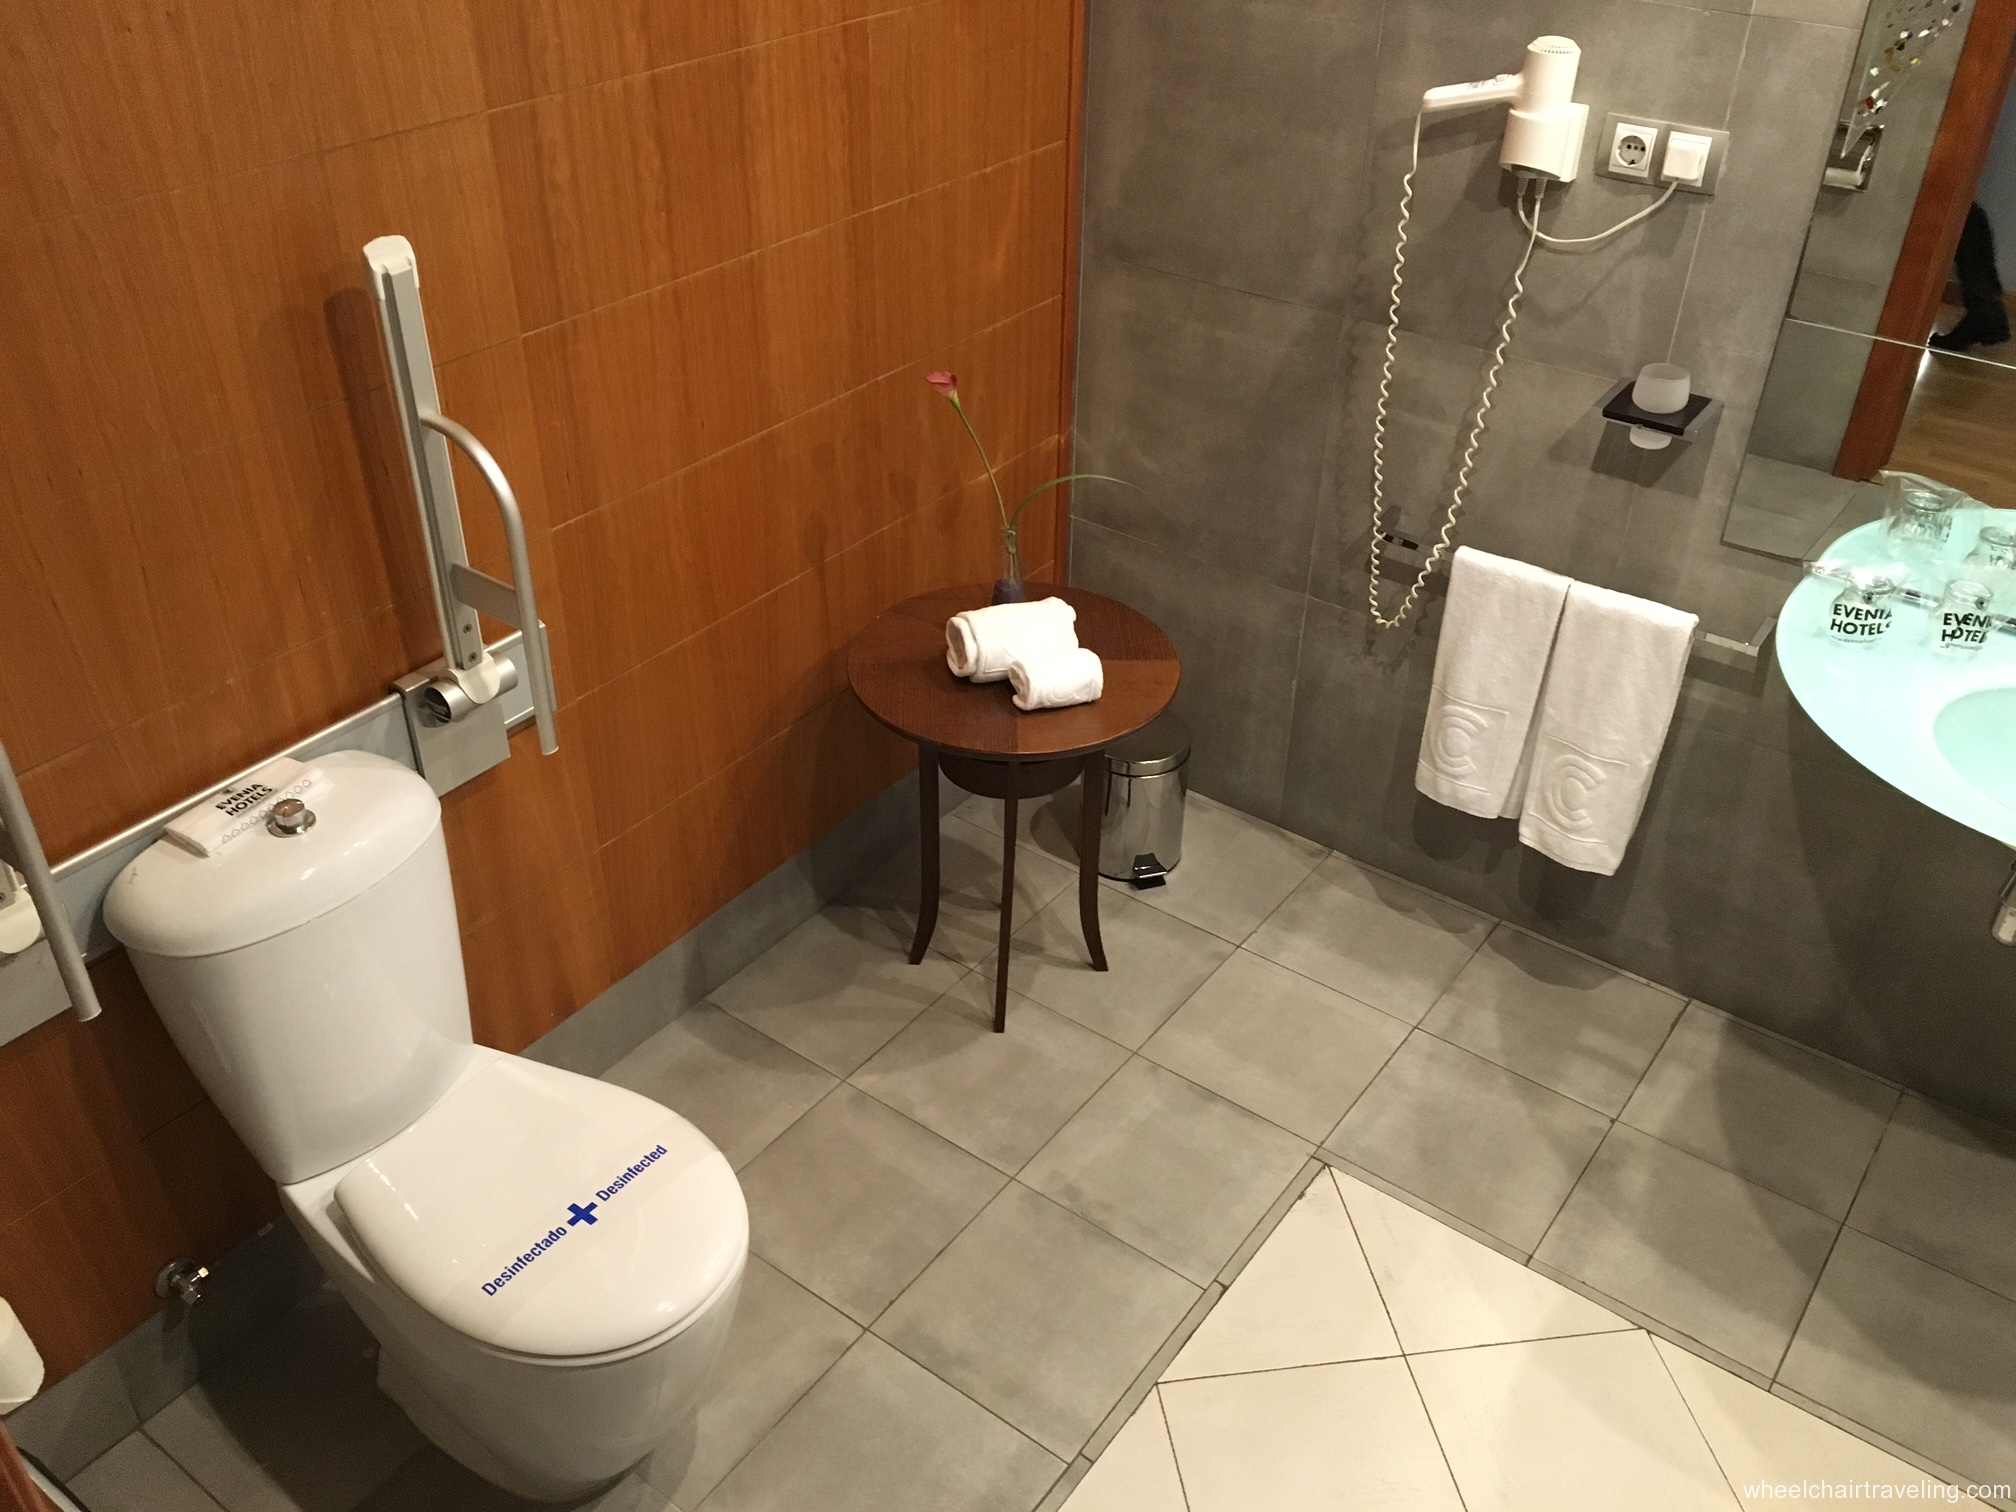 Barcelona hotel bathroom toilet